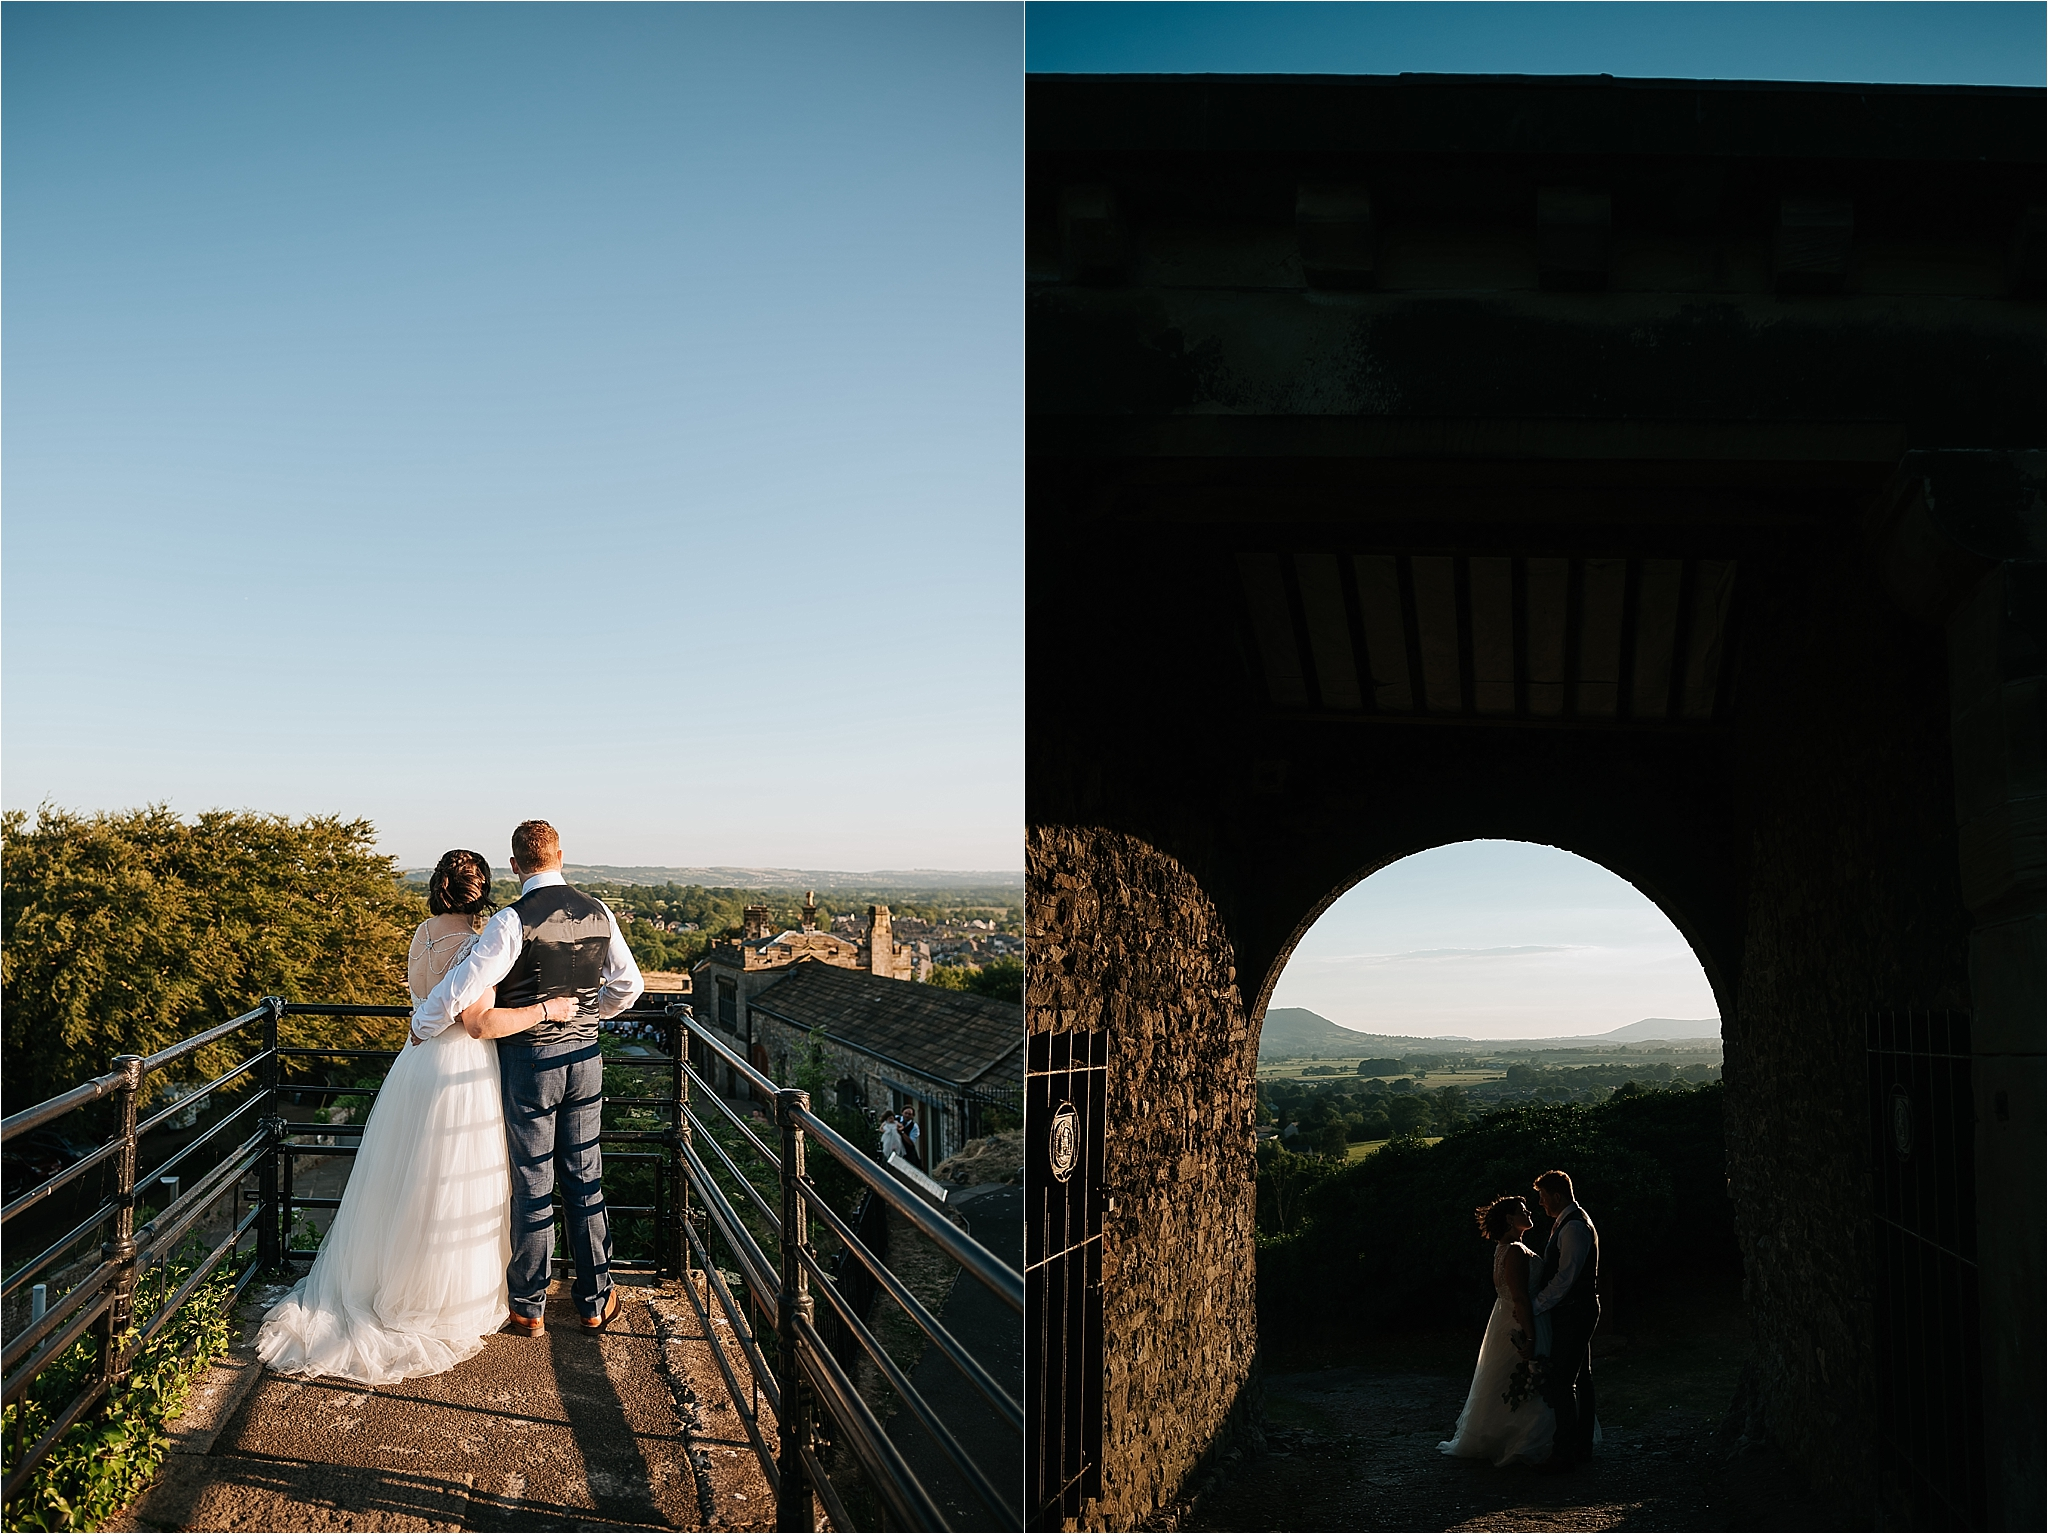 Wedding at clitheroe castle